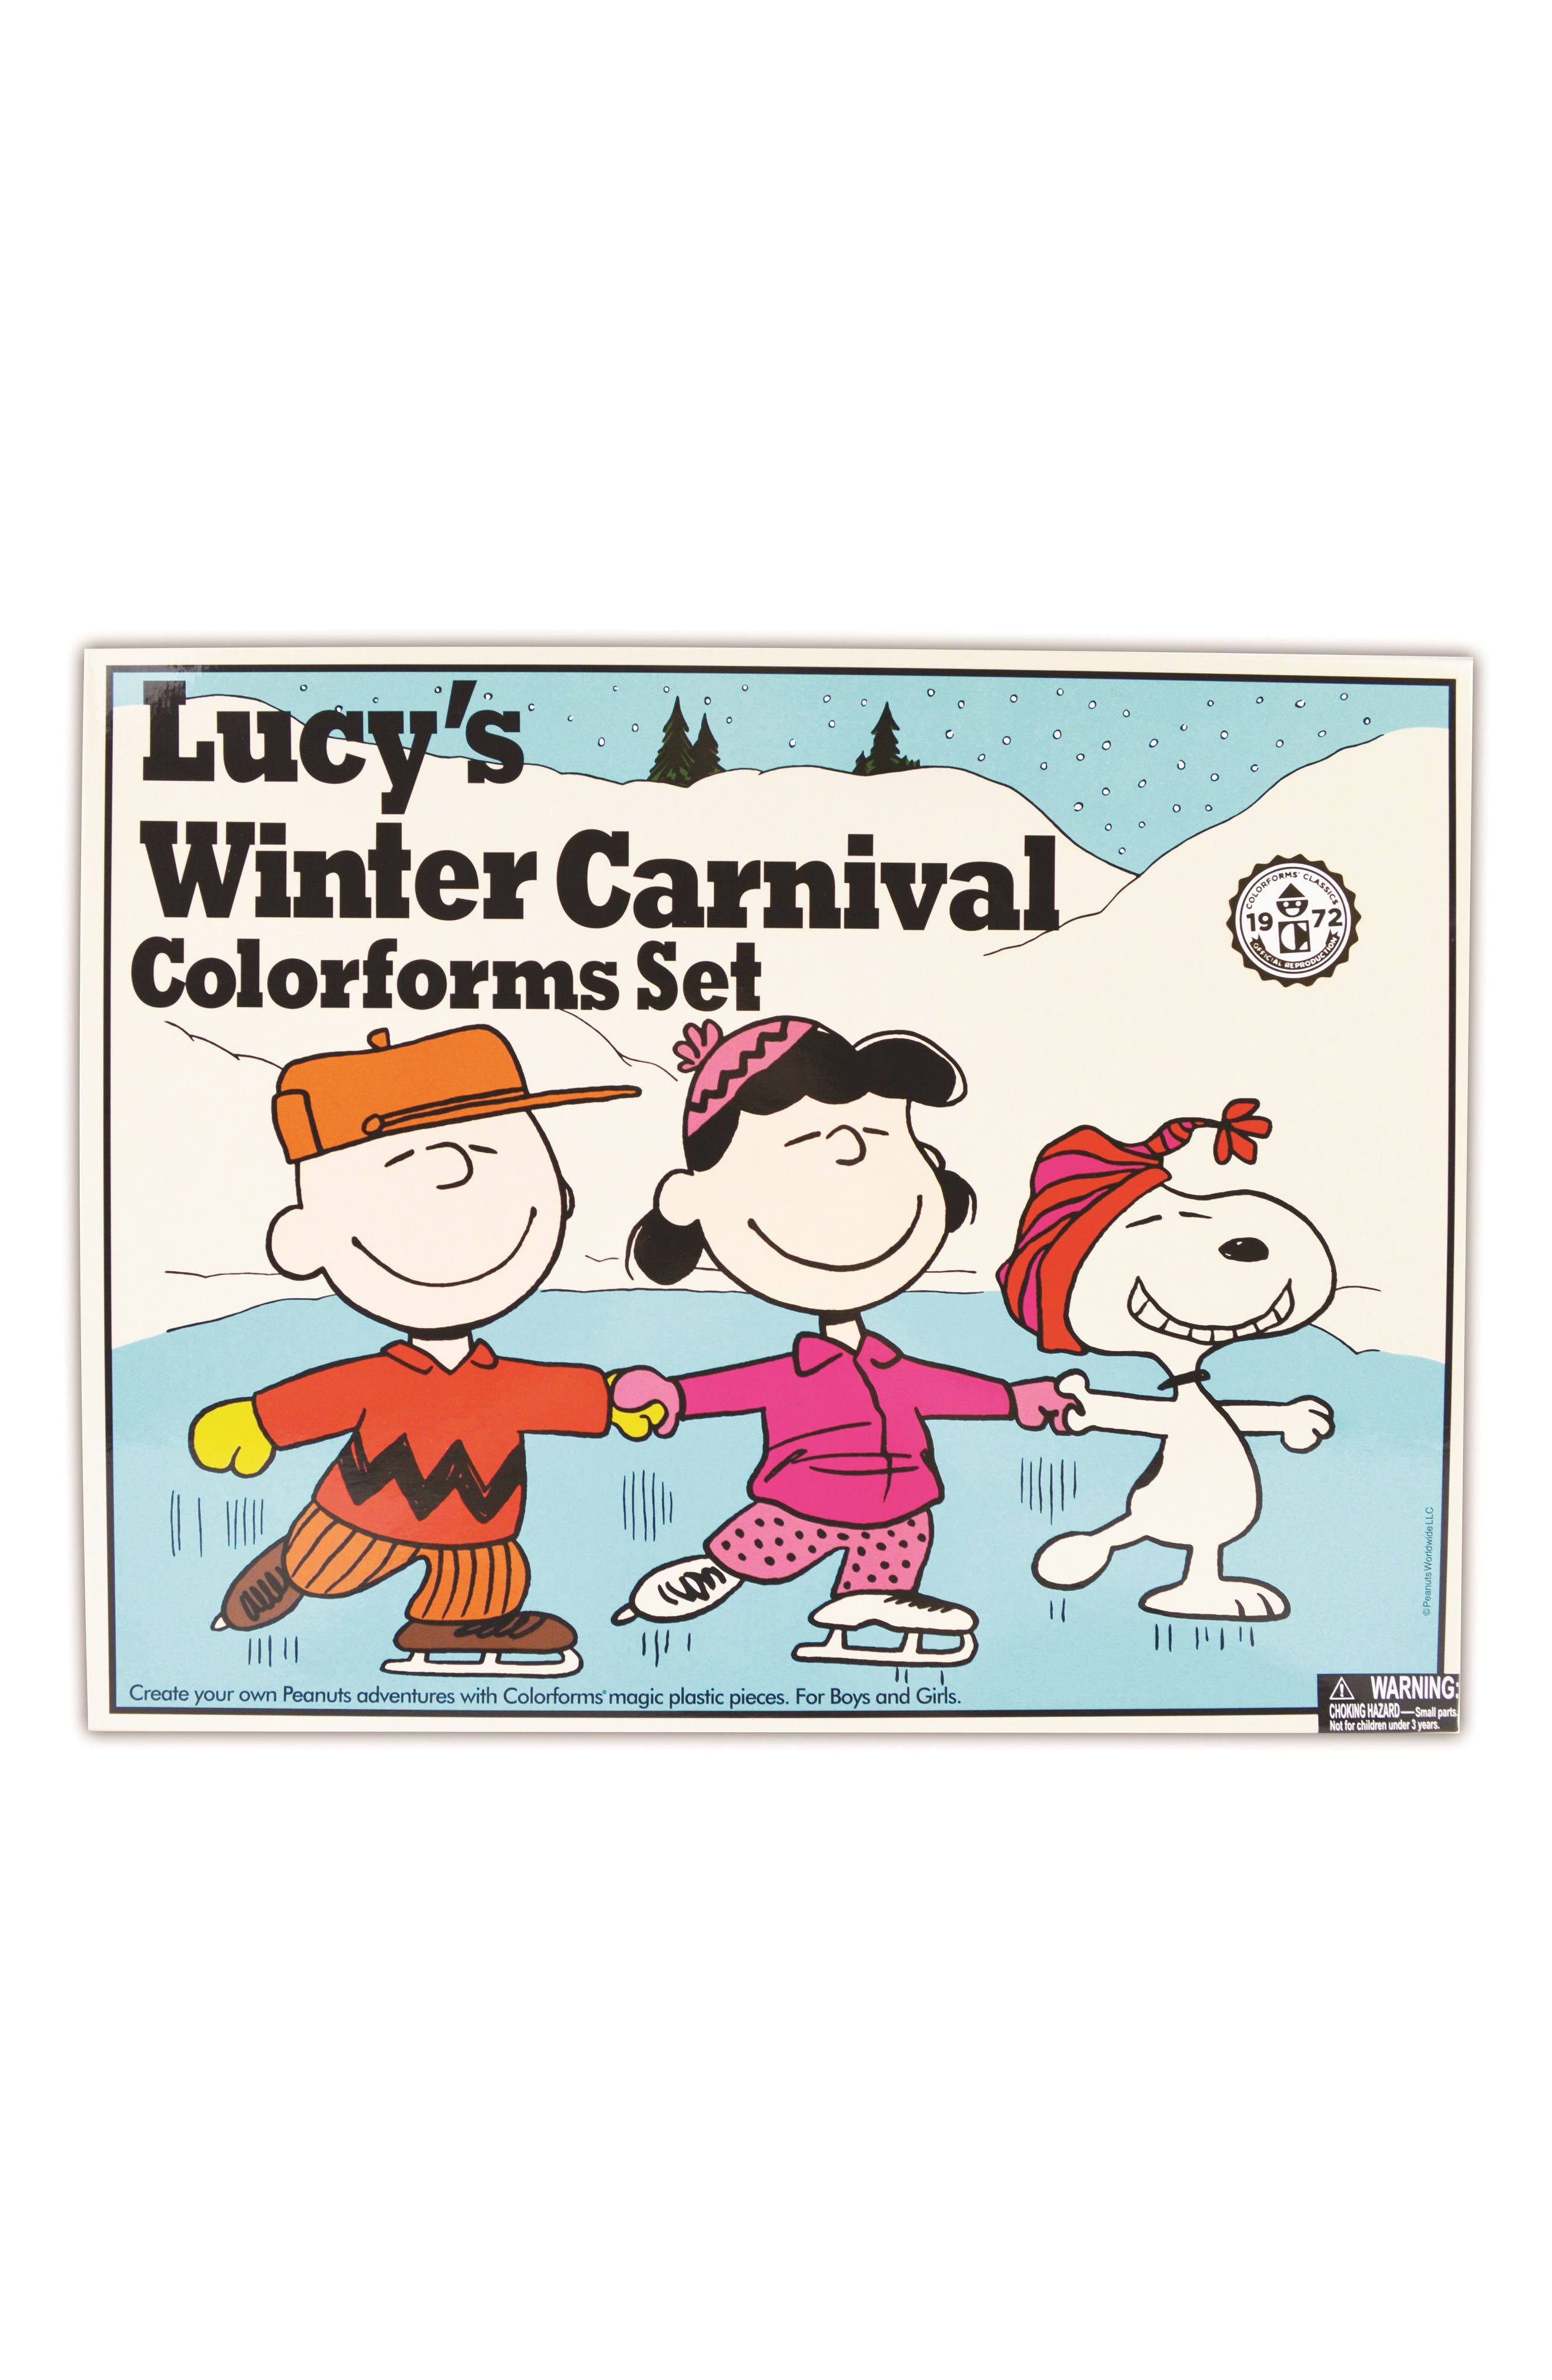 Colorforms Retro Lucy's Winter Carnival Sticker Play Set